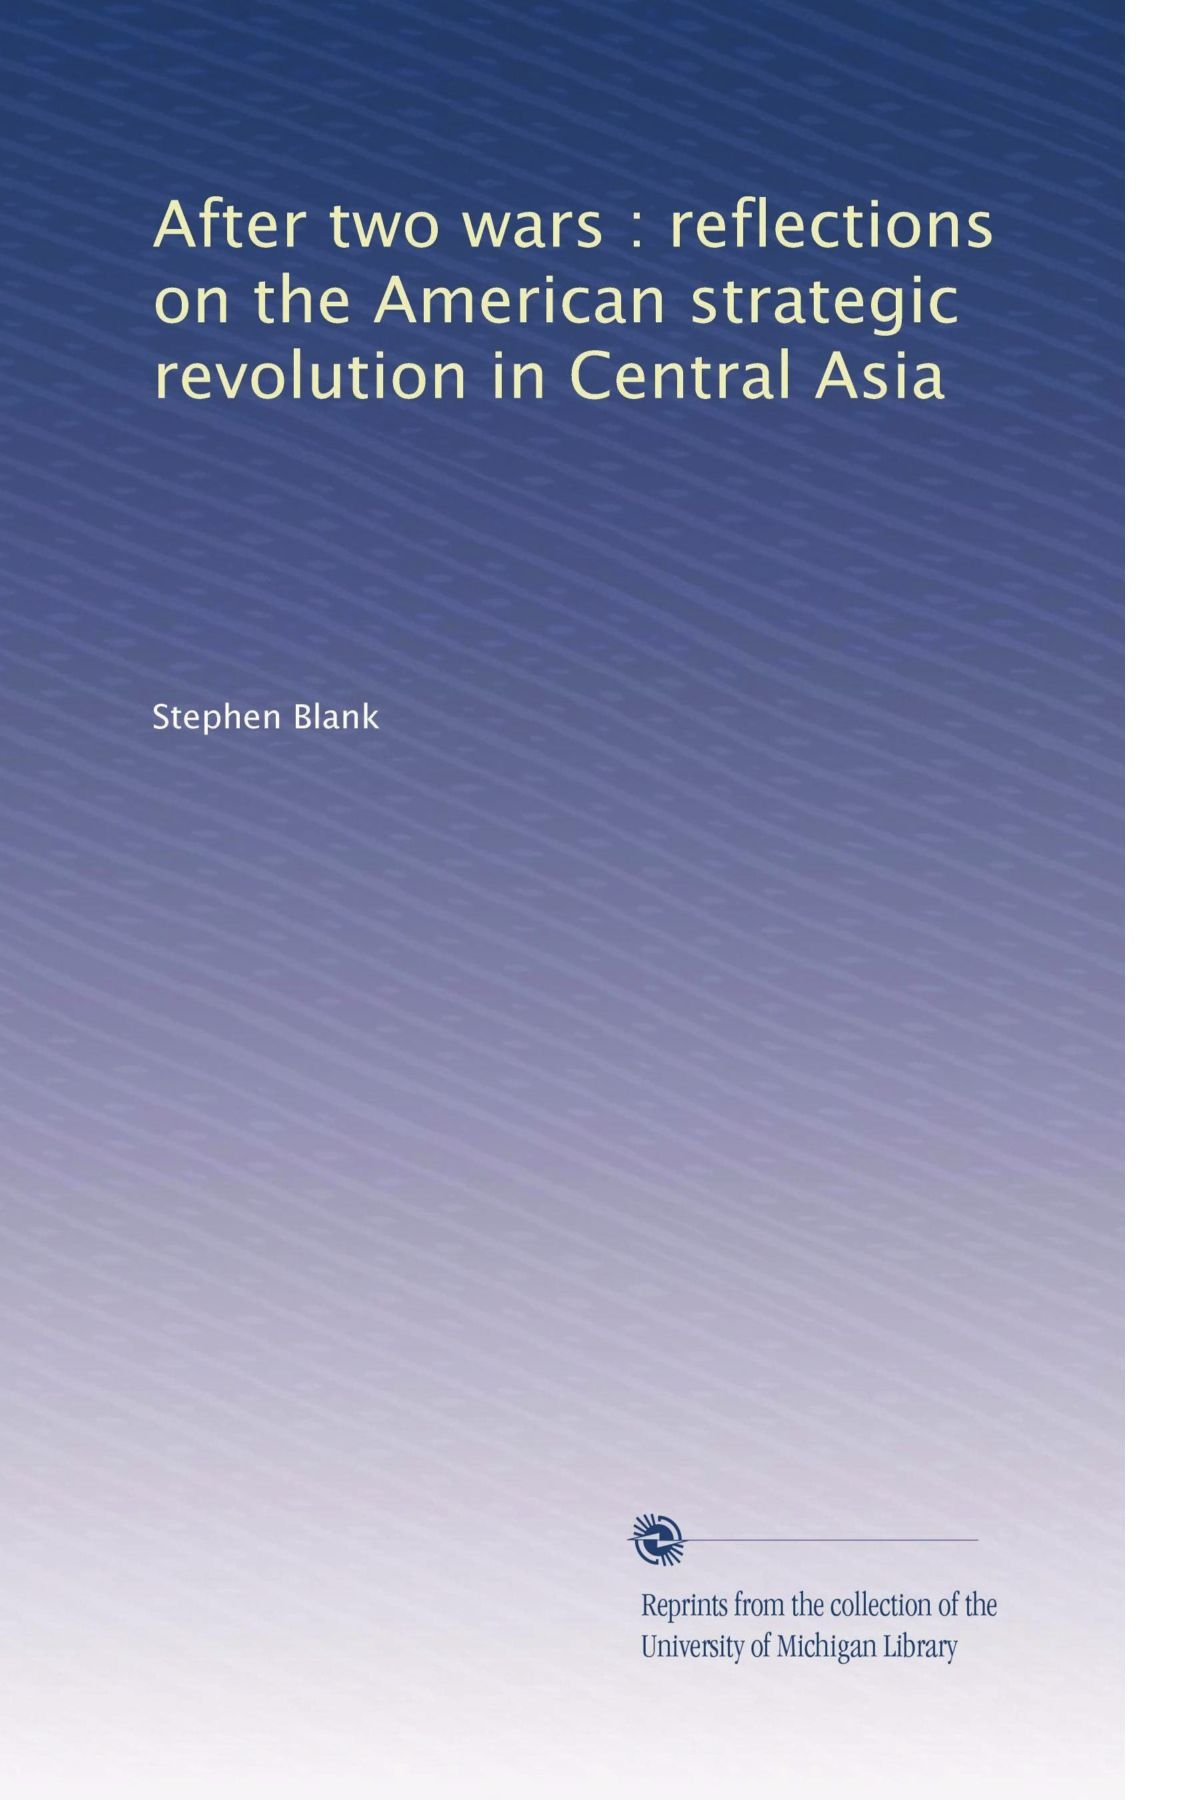 After two wars : reflections on the American strategic revolution in Central Asia pdf